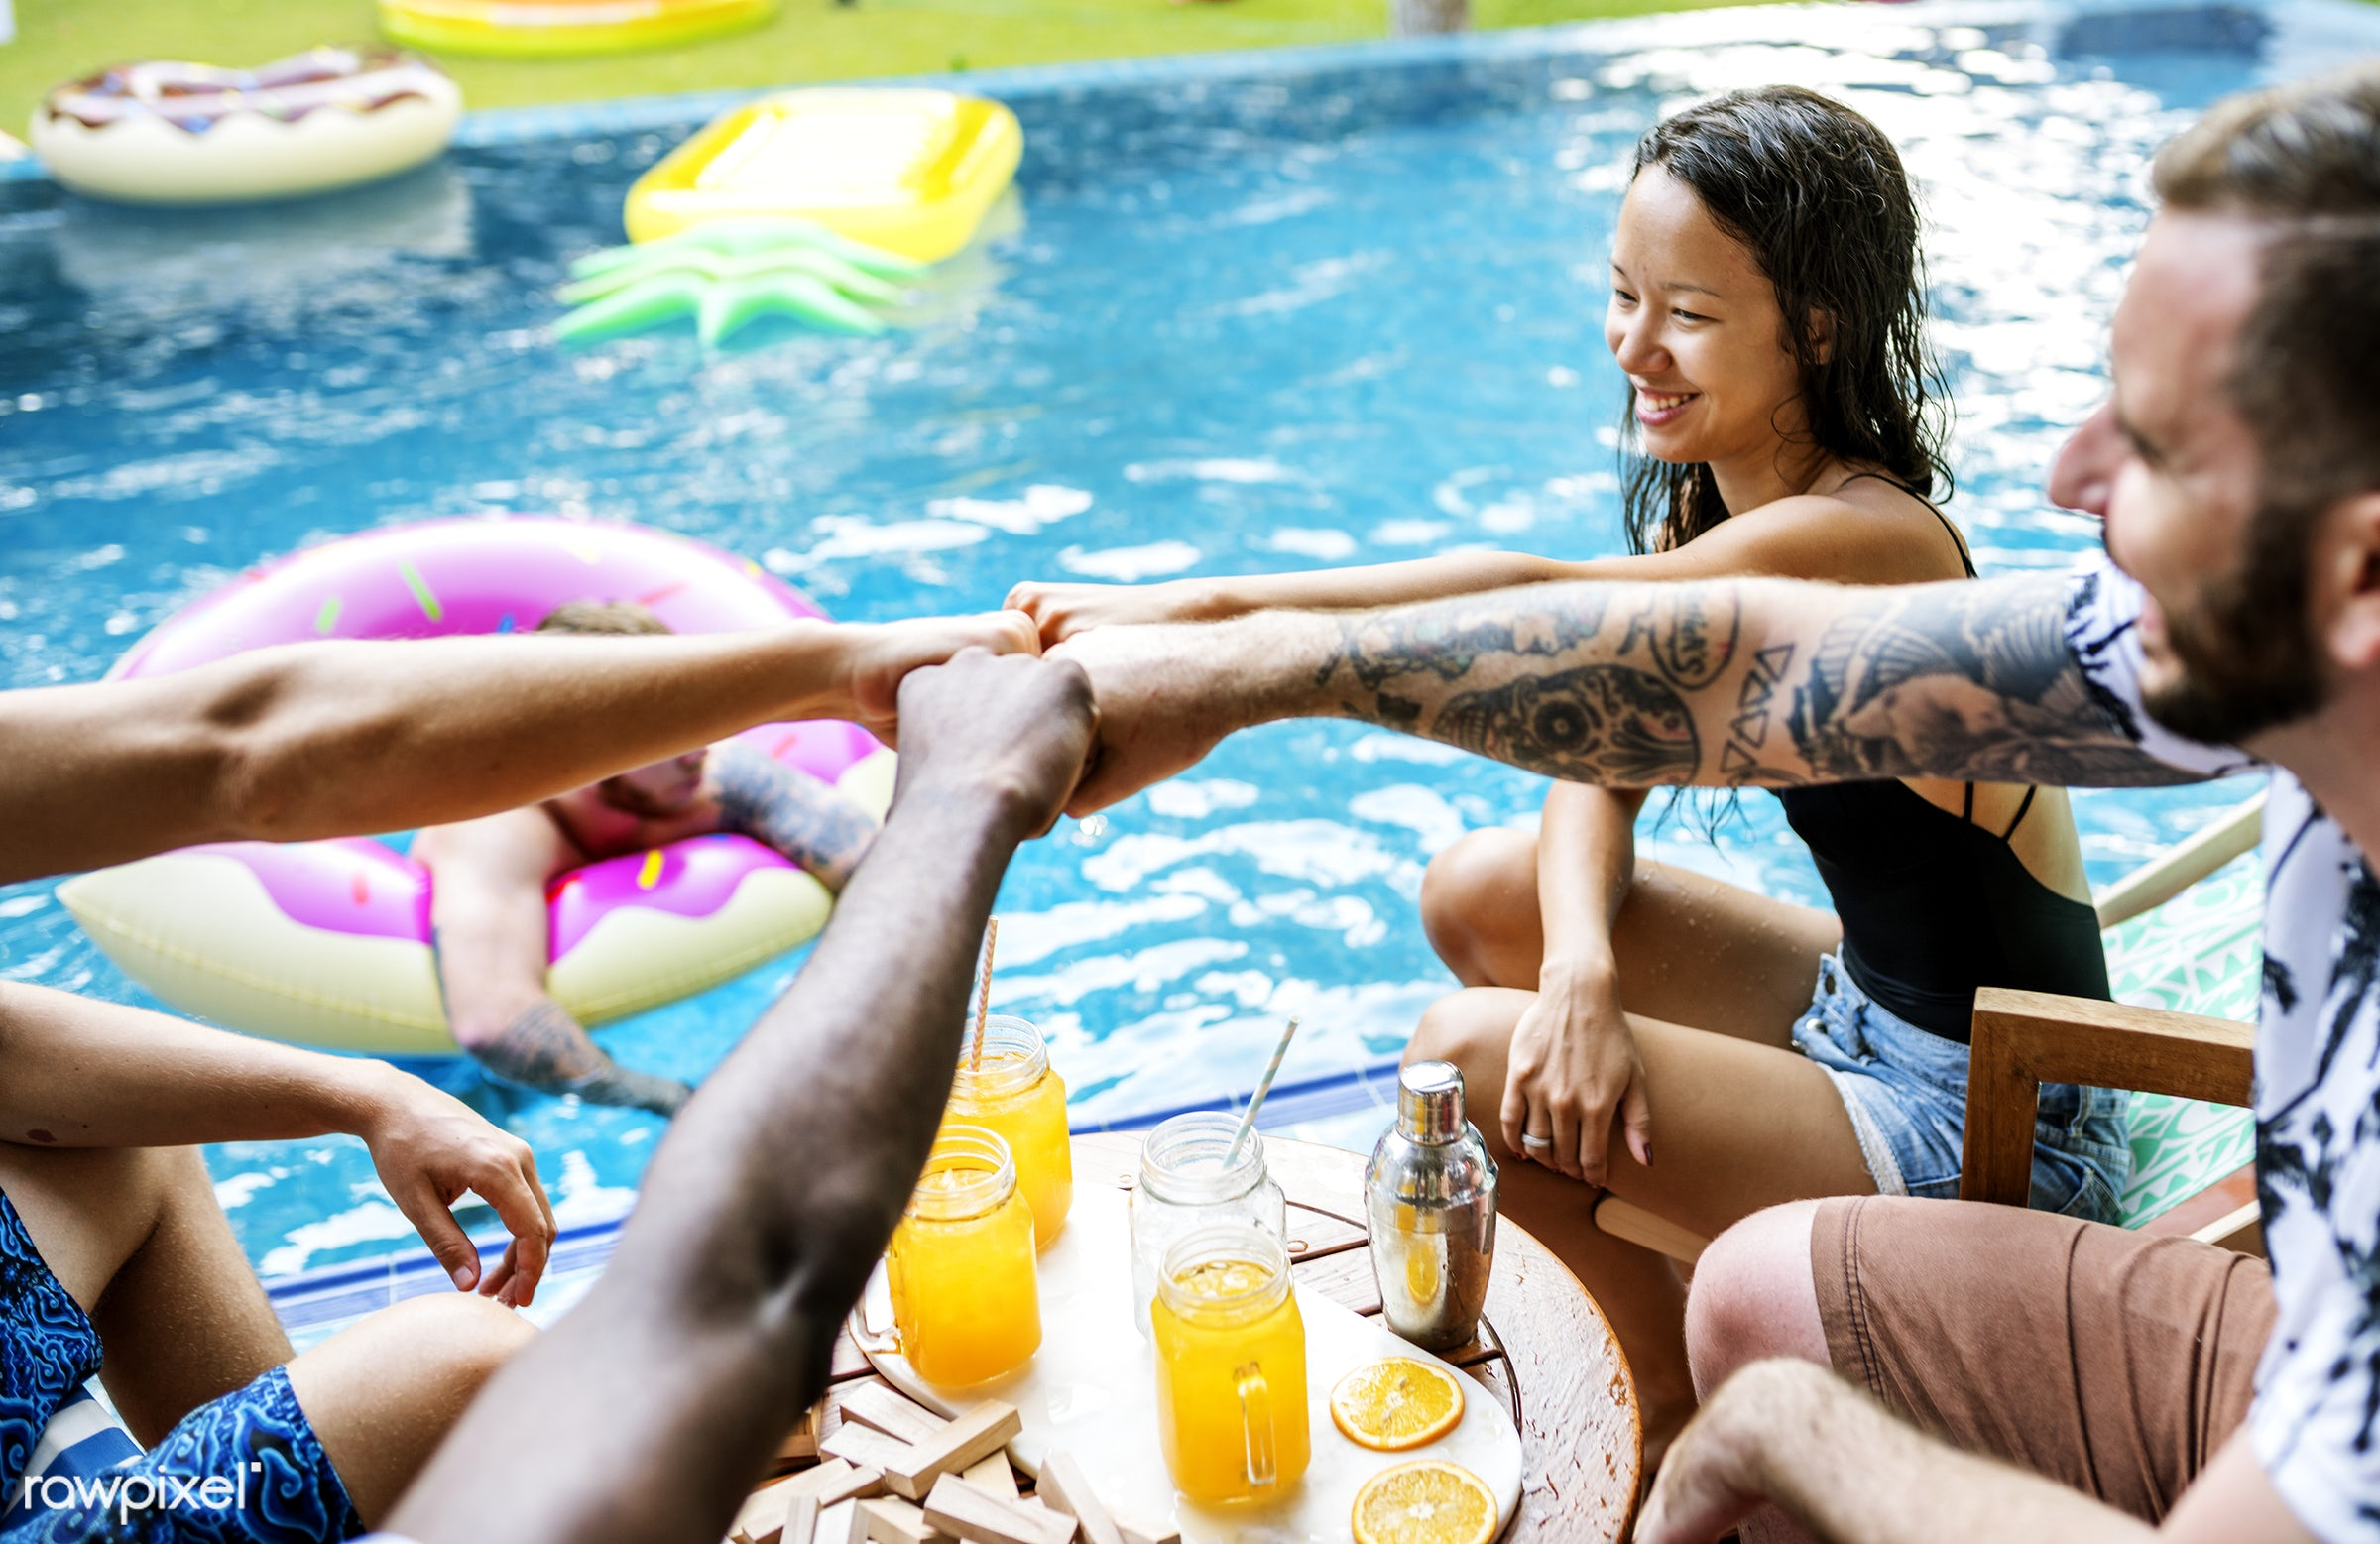 A diverse group of friends enjoying summer time by the pool - hands out, relax, diverse, recreation, party, people, together...